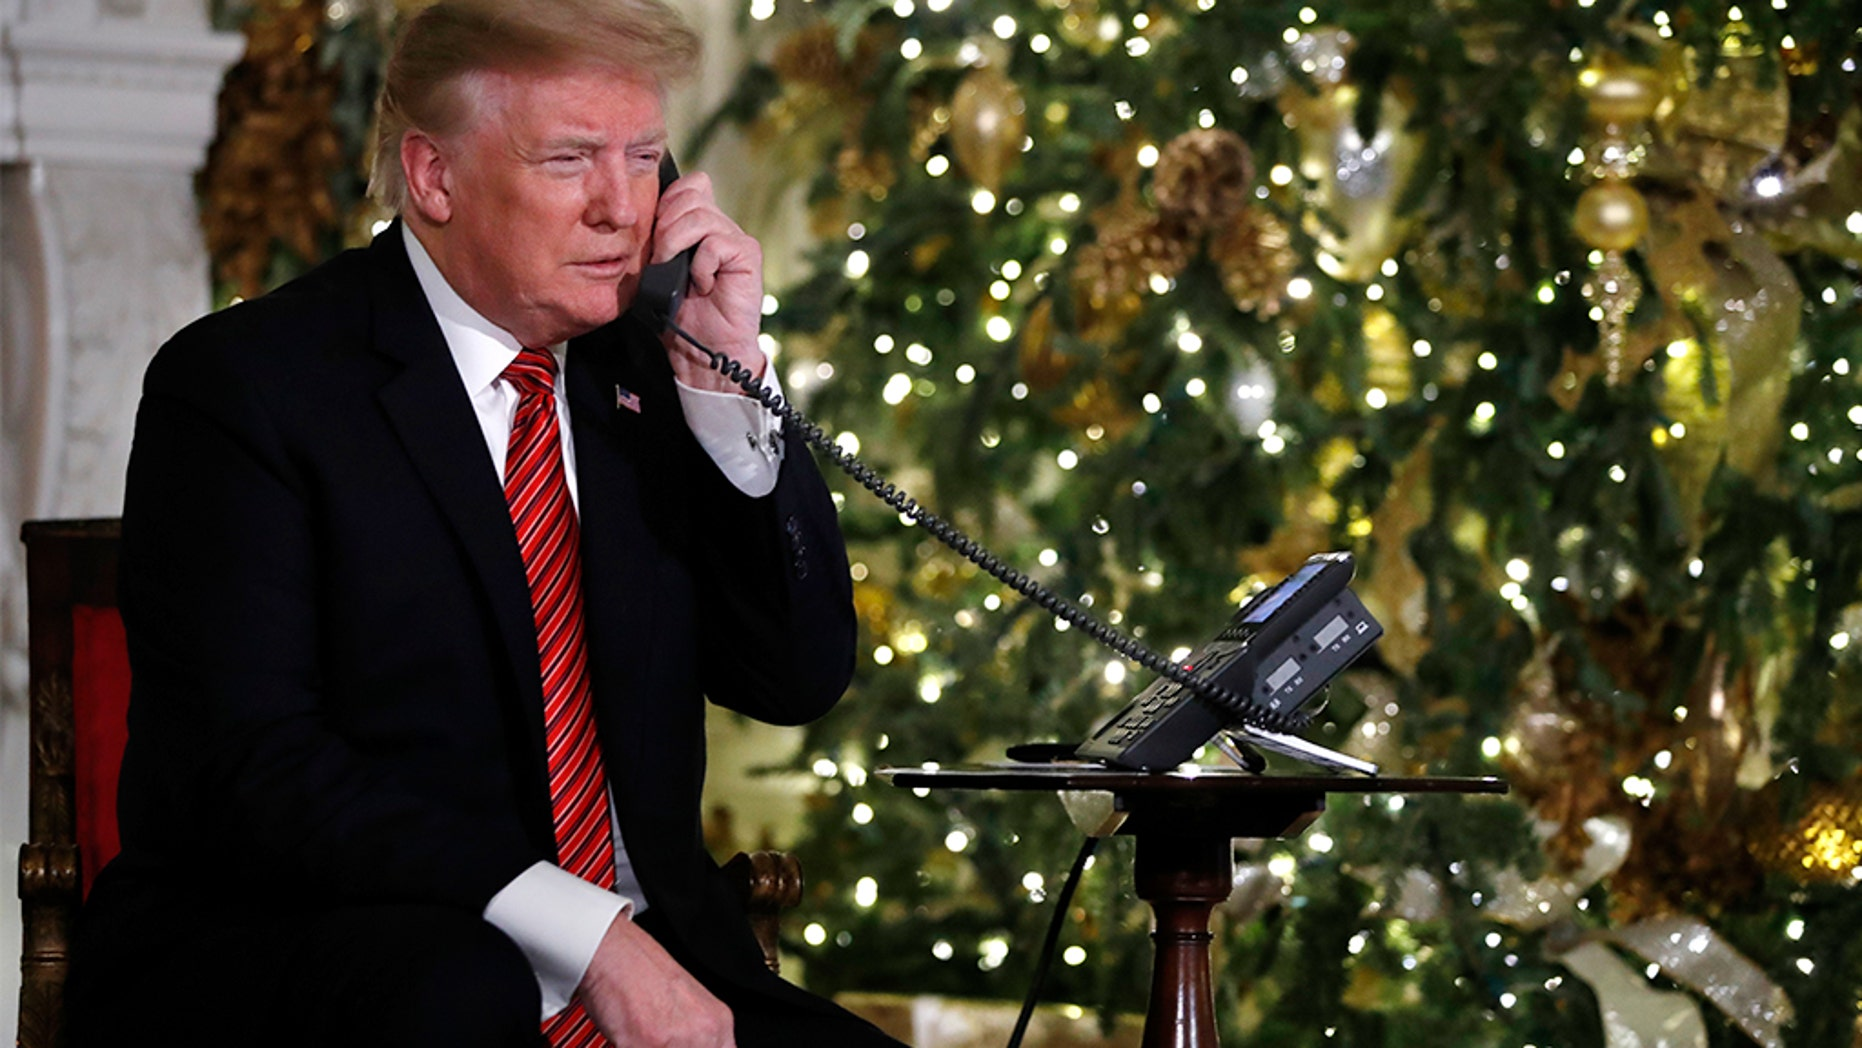 President Donald Trump talks on the phone to provide updates to follow Santa&#39;s moves by the North American Aerospace Defense Command (NORAD) on Christmas Eve, Monday, December 24, 201[ads1]8. (AP Photo / Jacquelyn Martin) [19659002] President Donald Trump talks on the phone to provide updates to follow Santa Tracker&#39;s movements at the North American Aerospace Command (NORAD) on Christmas Eve, Monday, December 24, 2018. (AP Photo / Jacquelyn Martin) <!----></p> </div> </div> </div> <p class=